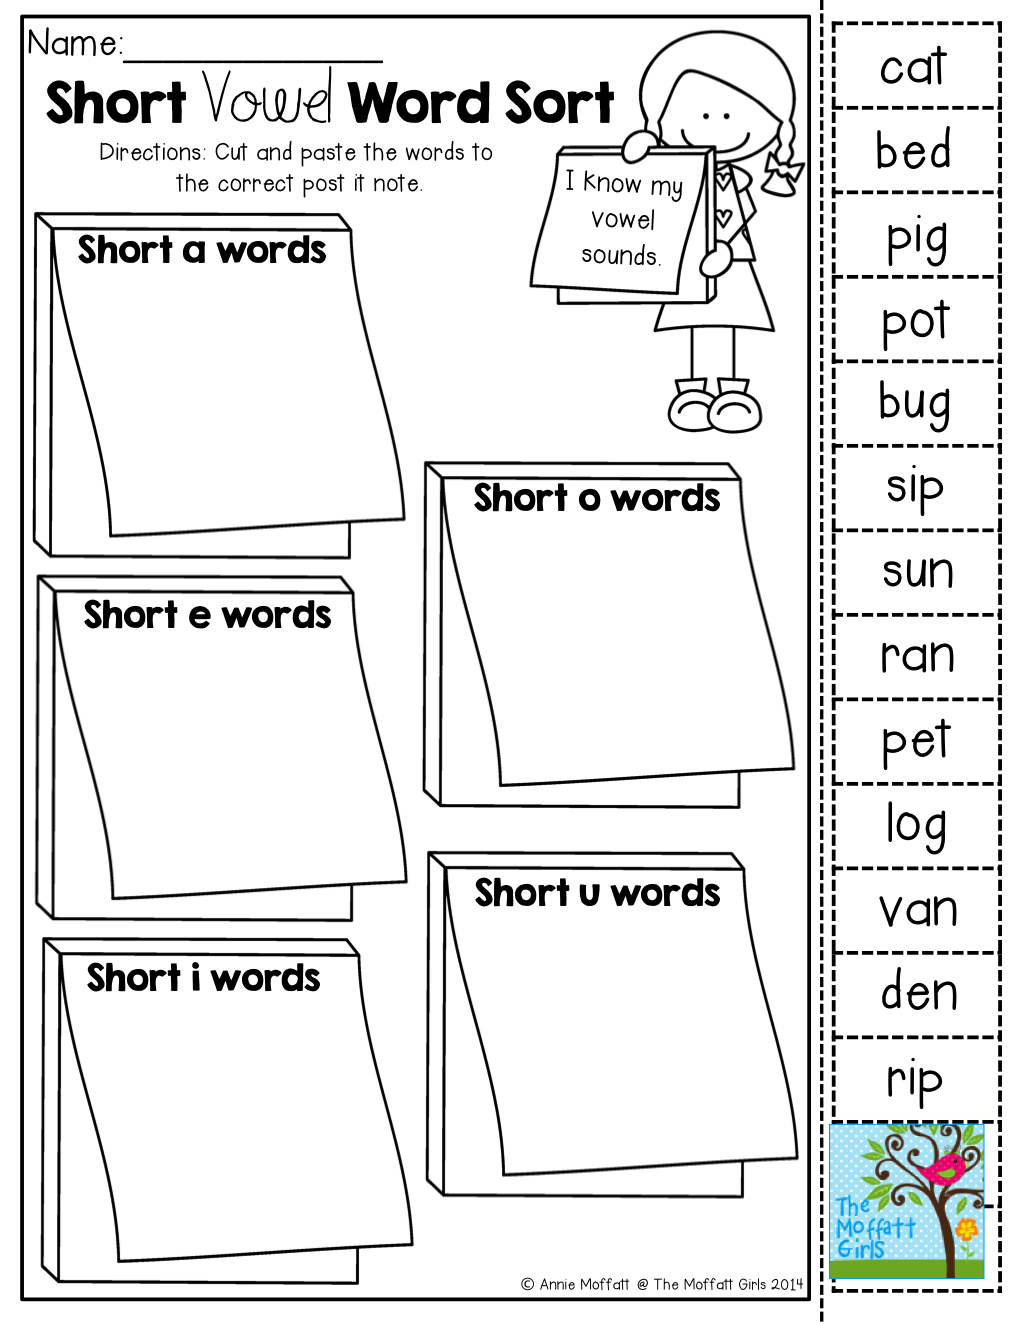 I Is For Island Vowel Tracing Sheet And Coloring Page Freebie Vowels Worksheets Preschool I